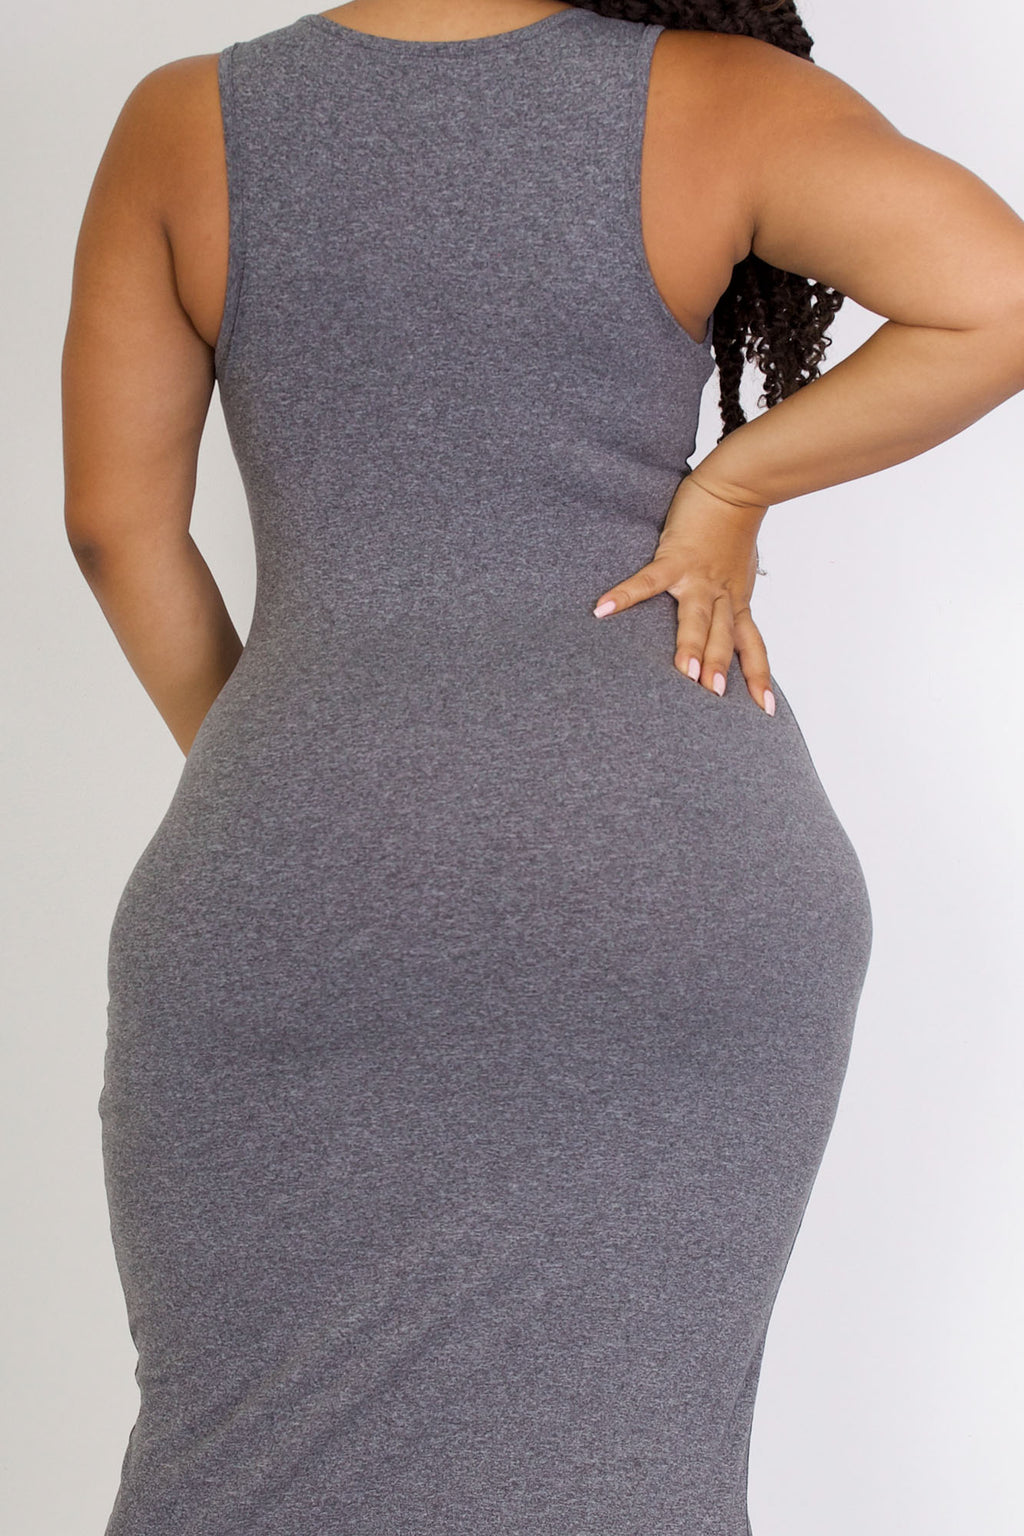 The Body Dress 'Pepper Gray' (fits up to Plus)